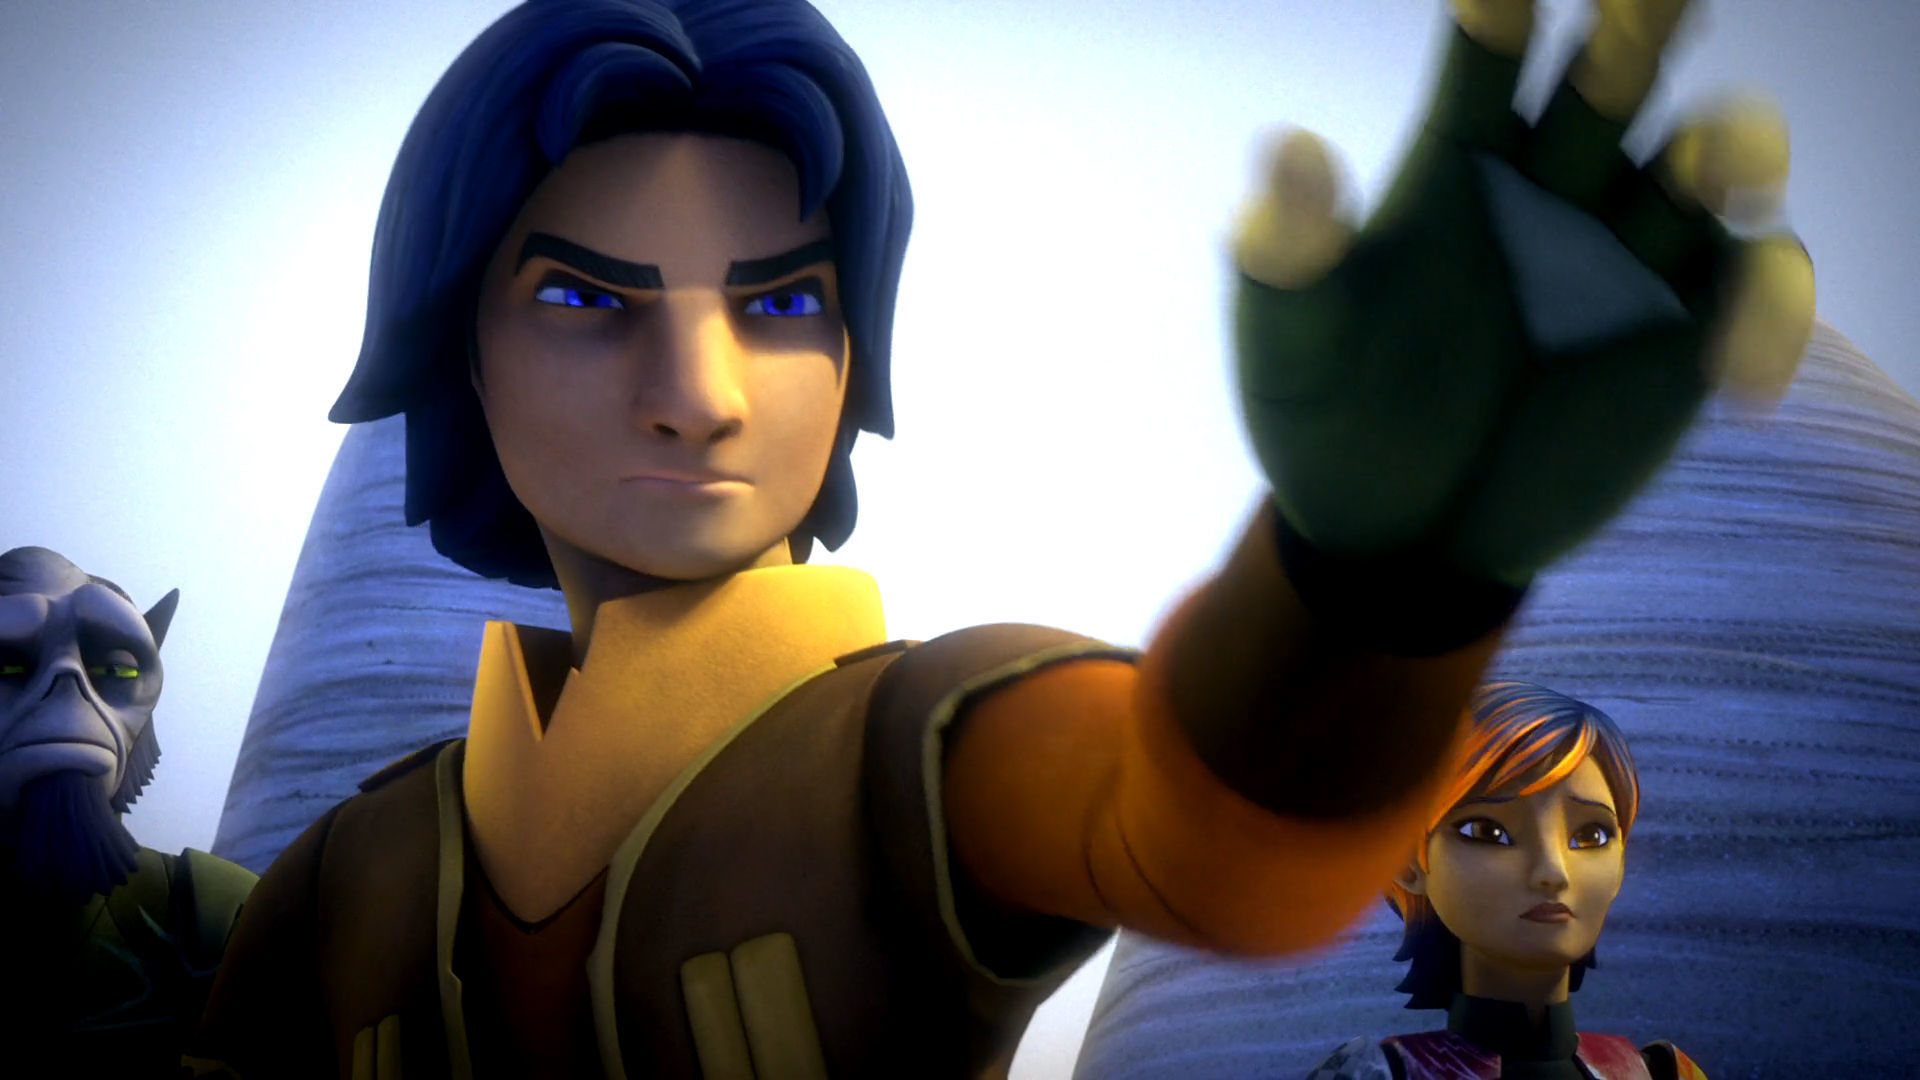 Star Wars Rebels: Ezra